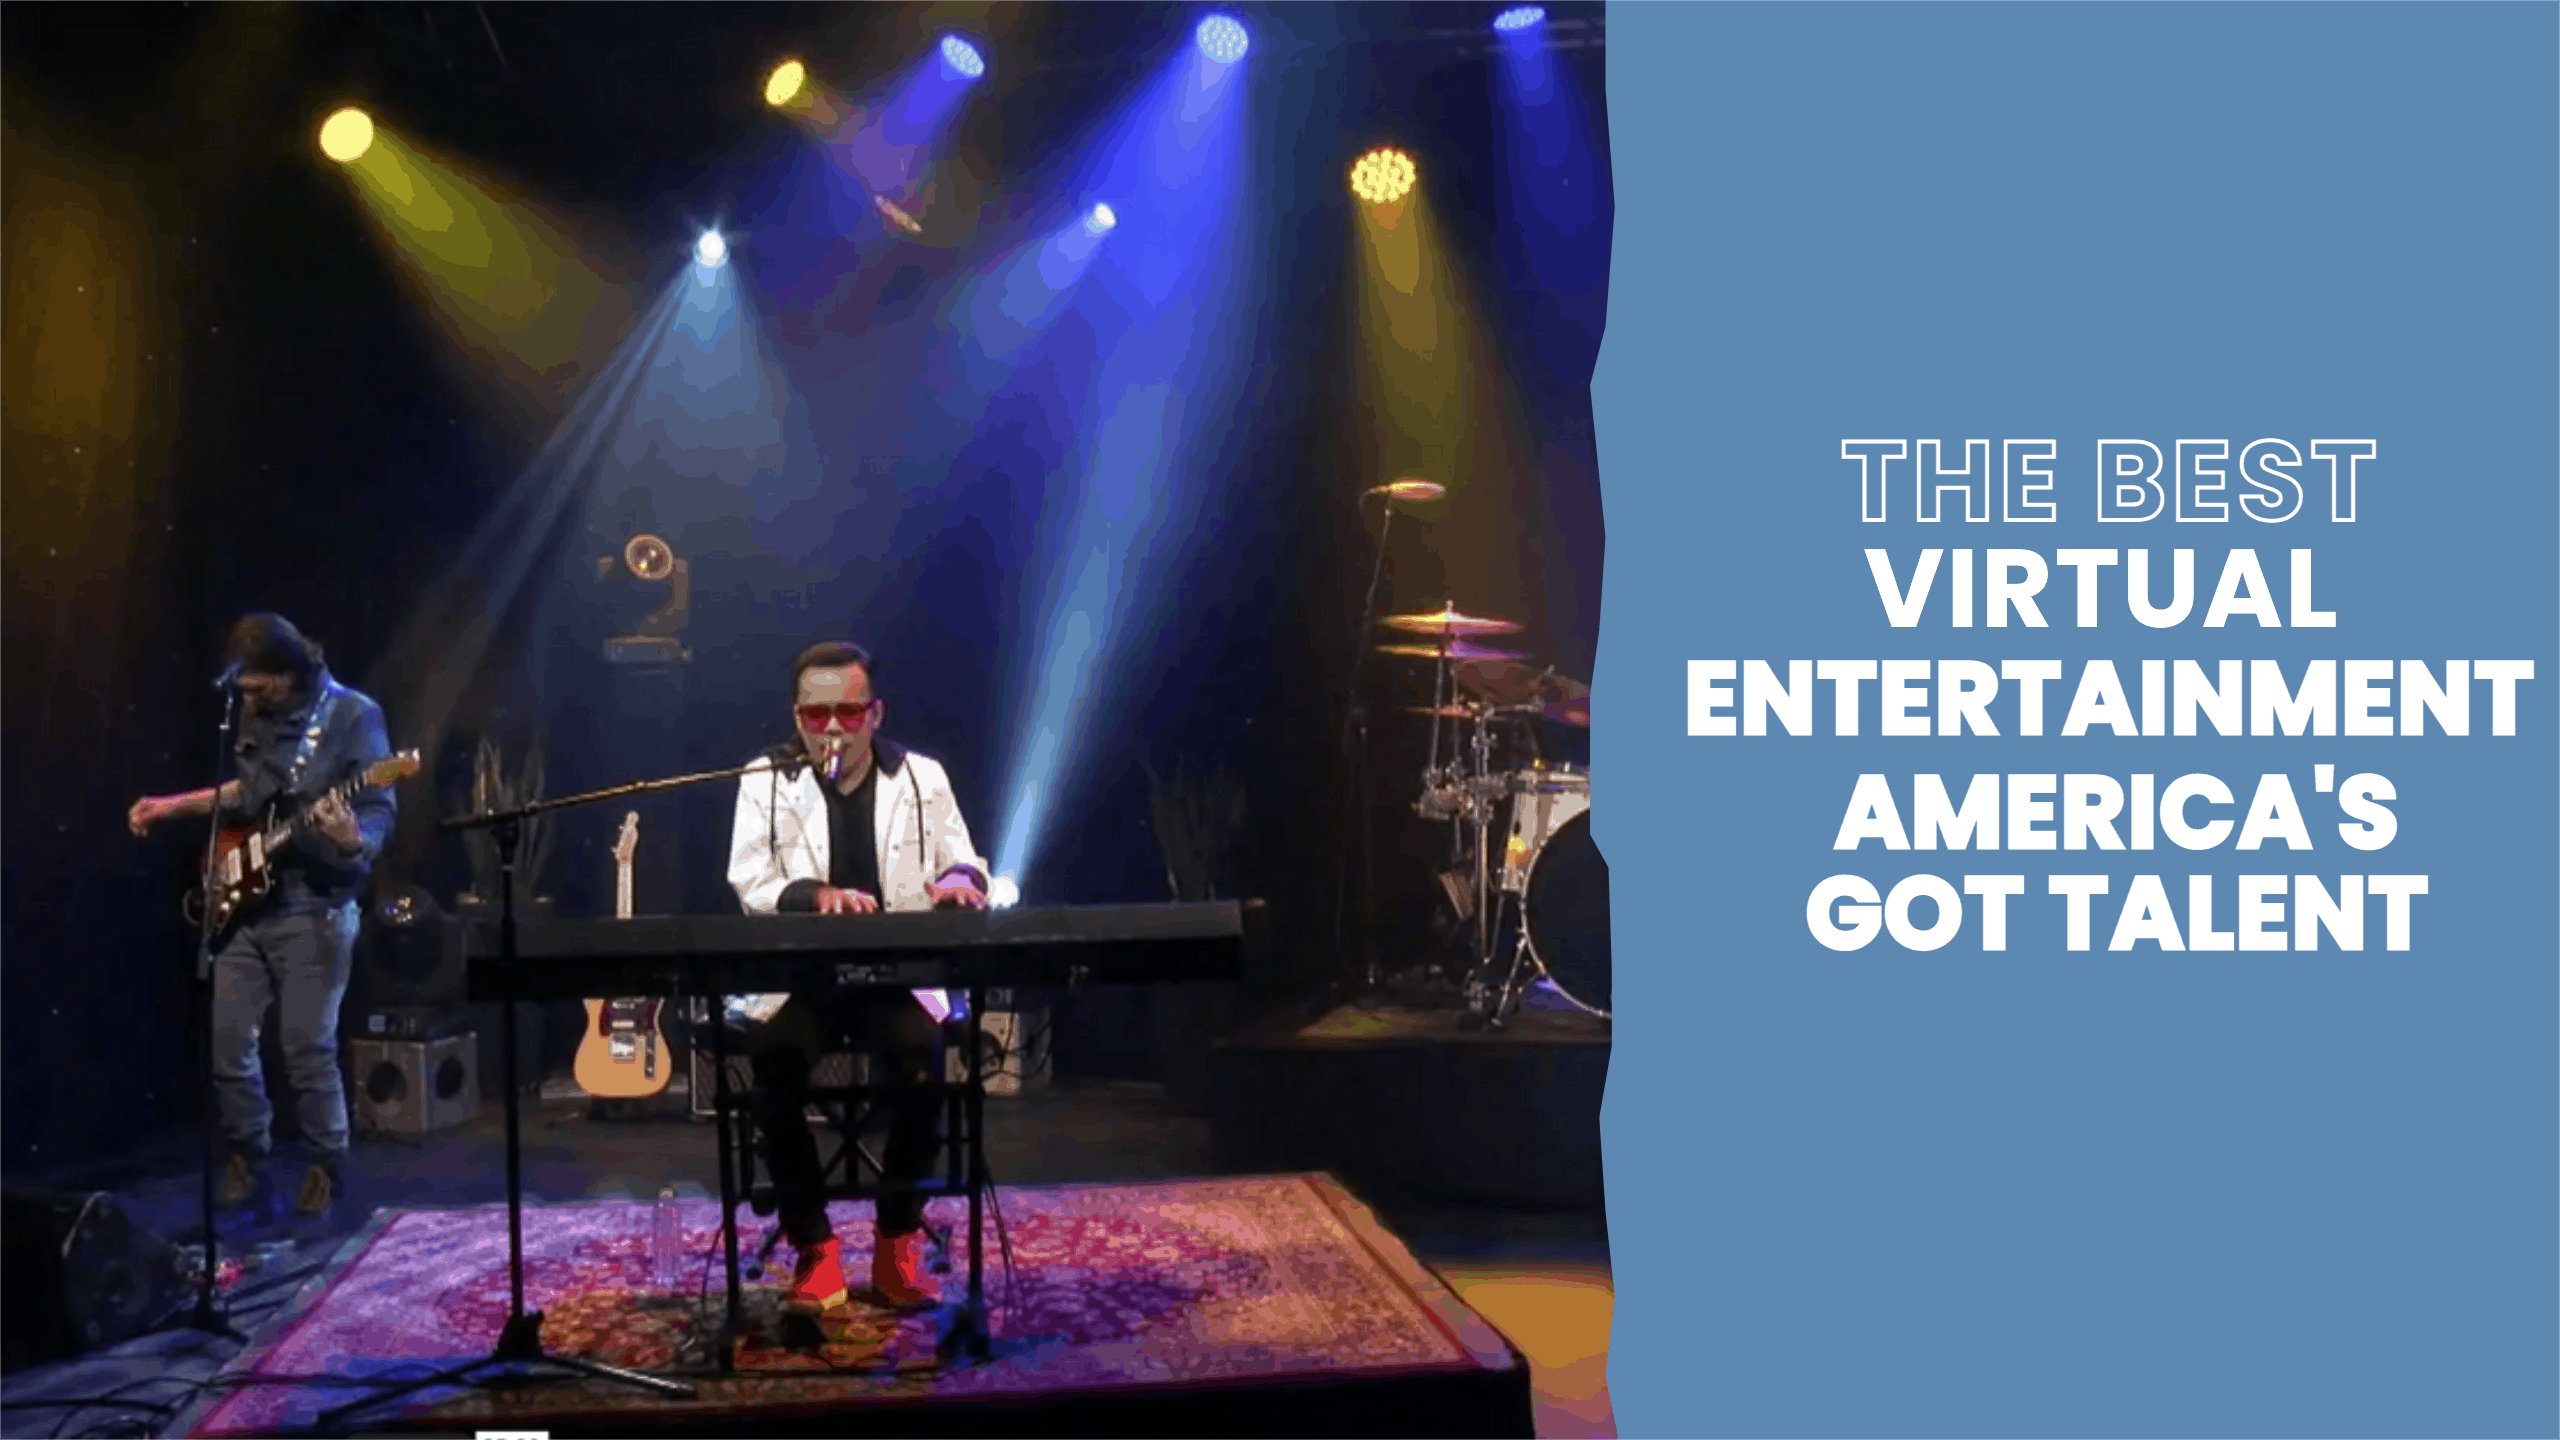 Hire the Best Virtual Entertainers from America's Got Talent